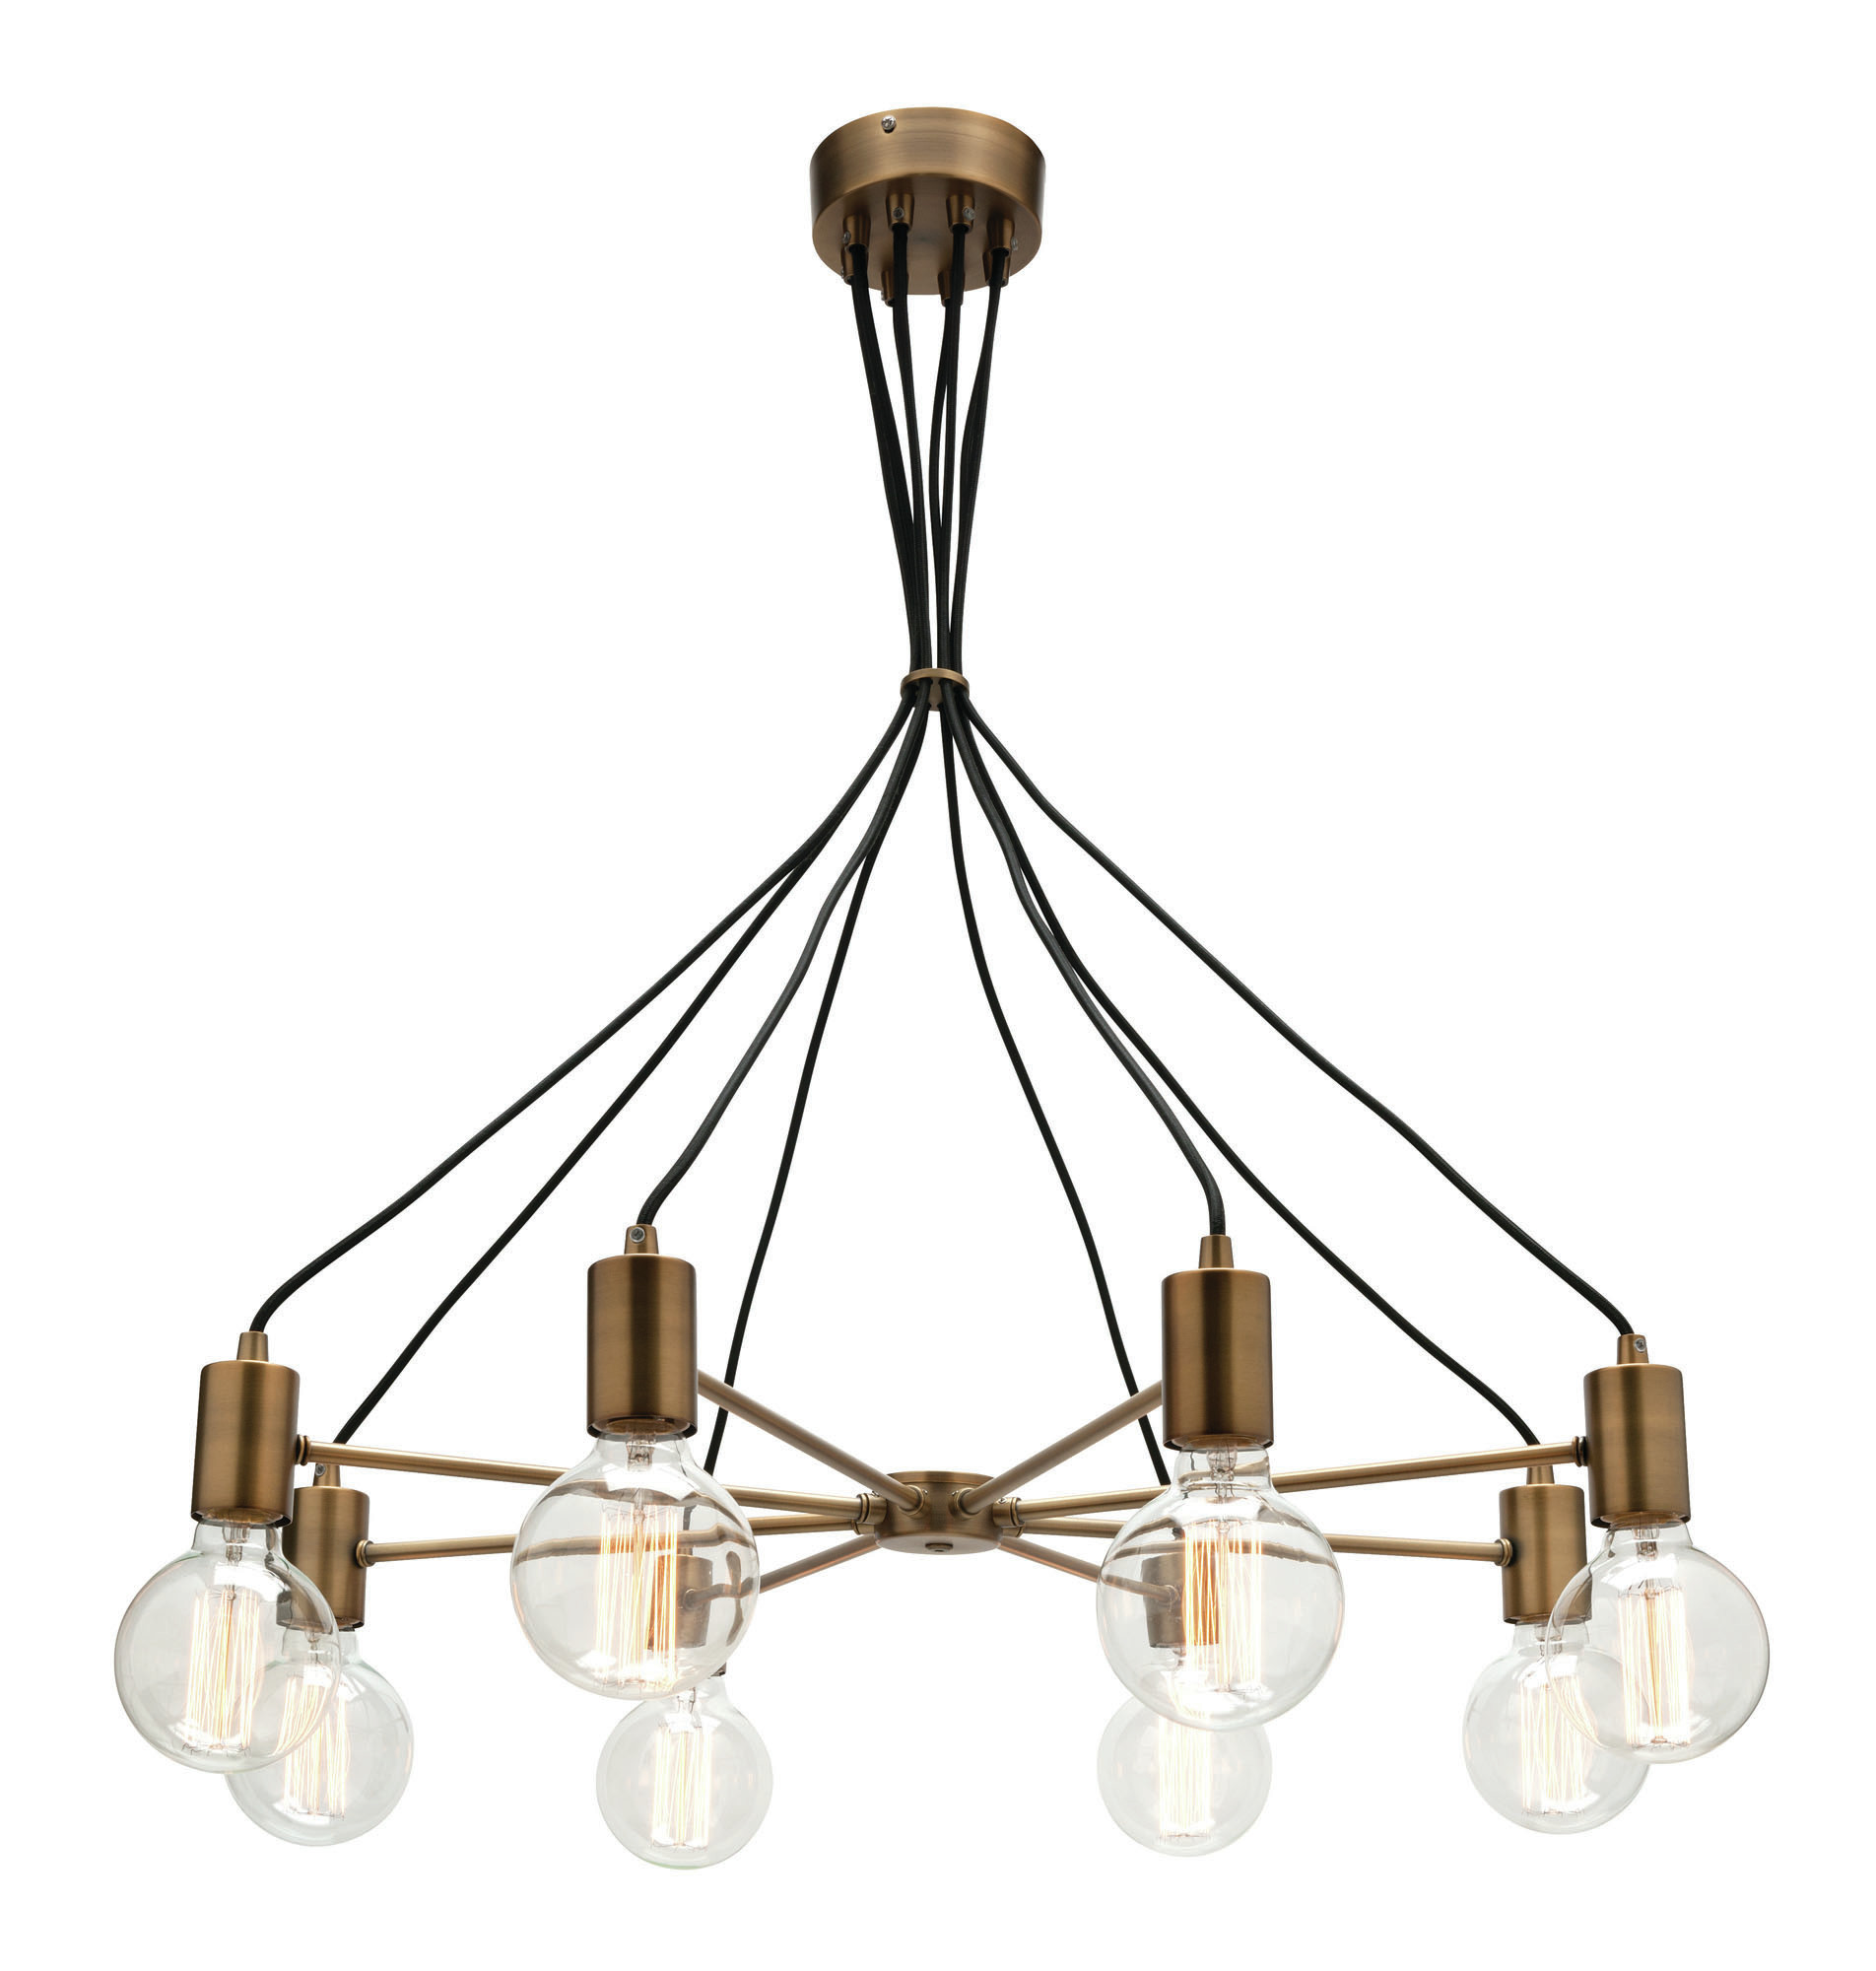 homewares goa republic brass light coco home pendant lighting clearance